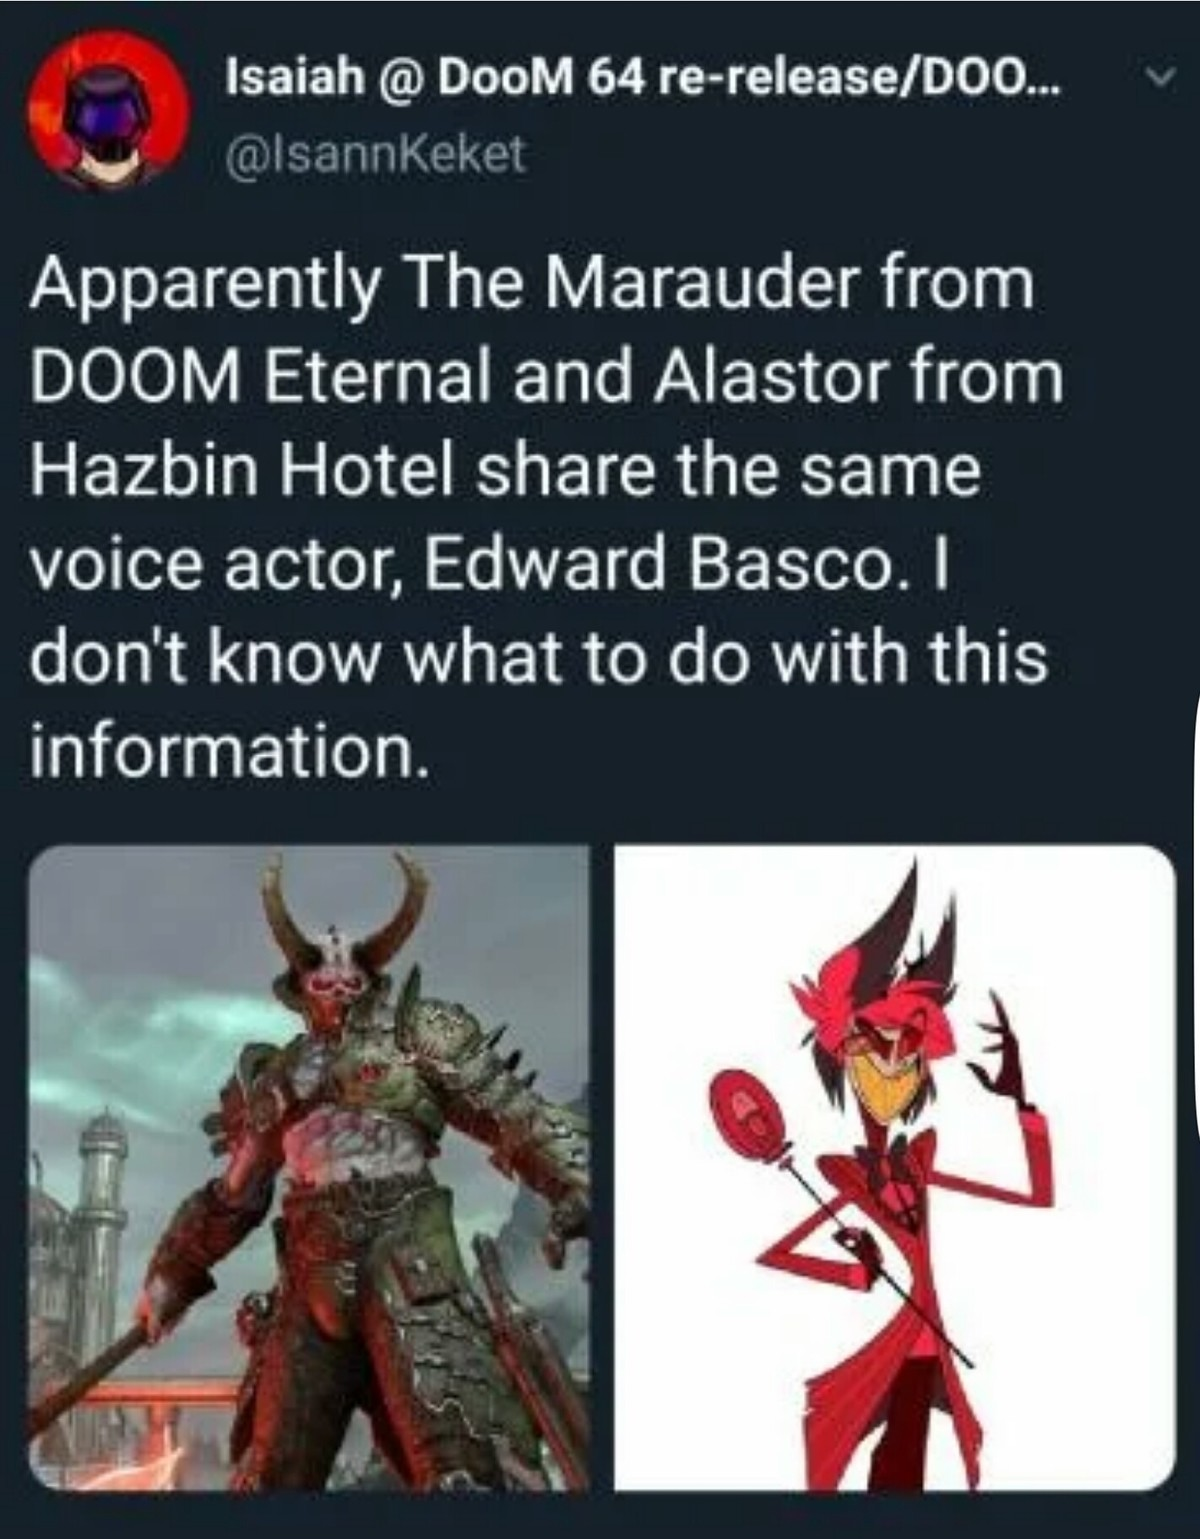 I don't either. .. From flirty radio demon to doomguy's closest equal